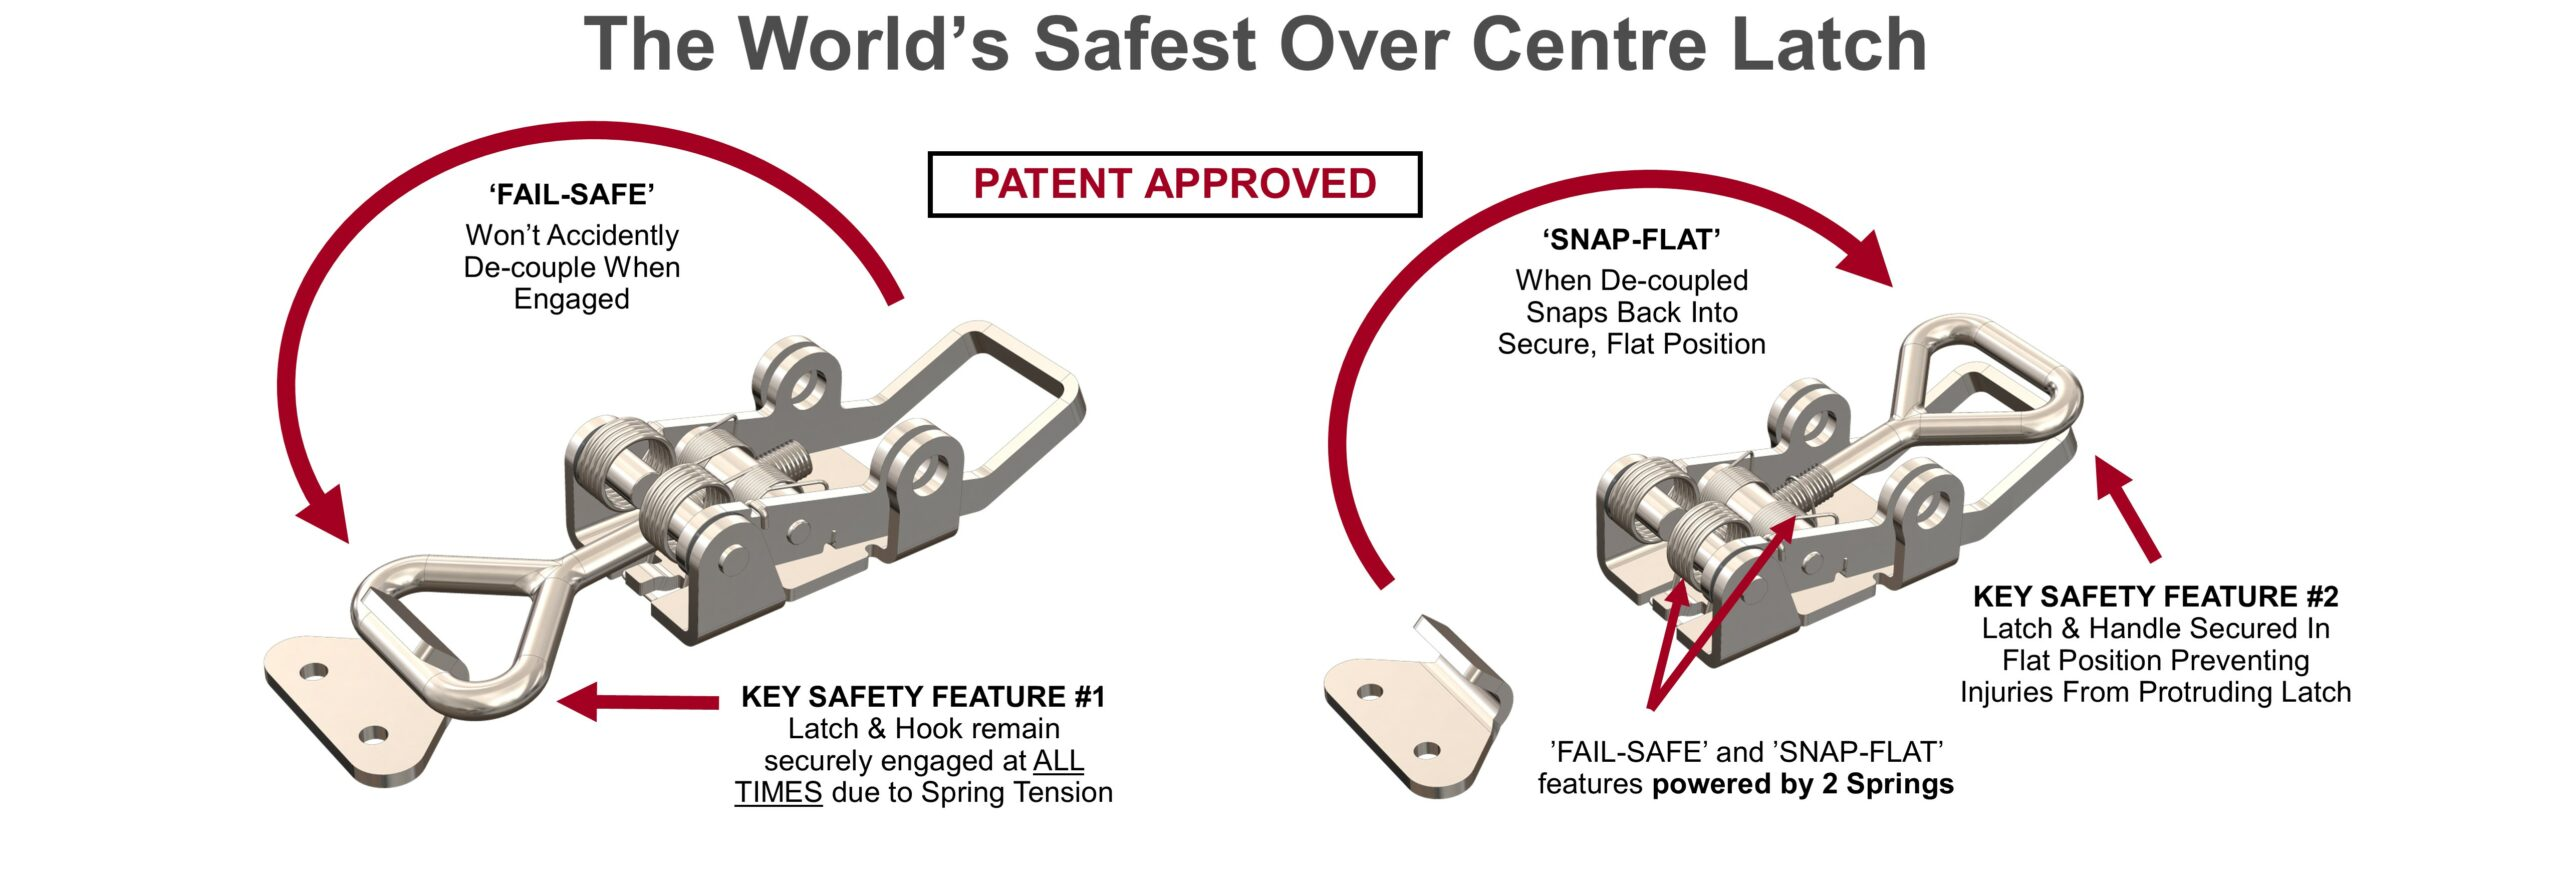 Diagrams explaining safety benefits of the Snap-Flat Over Centre latch